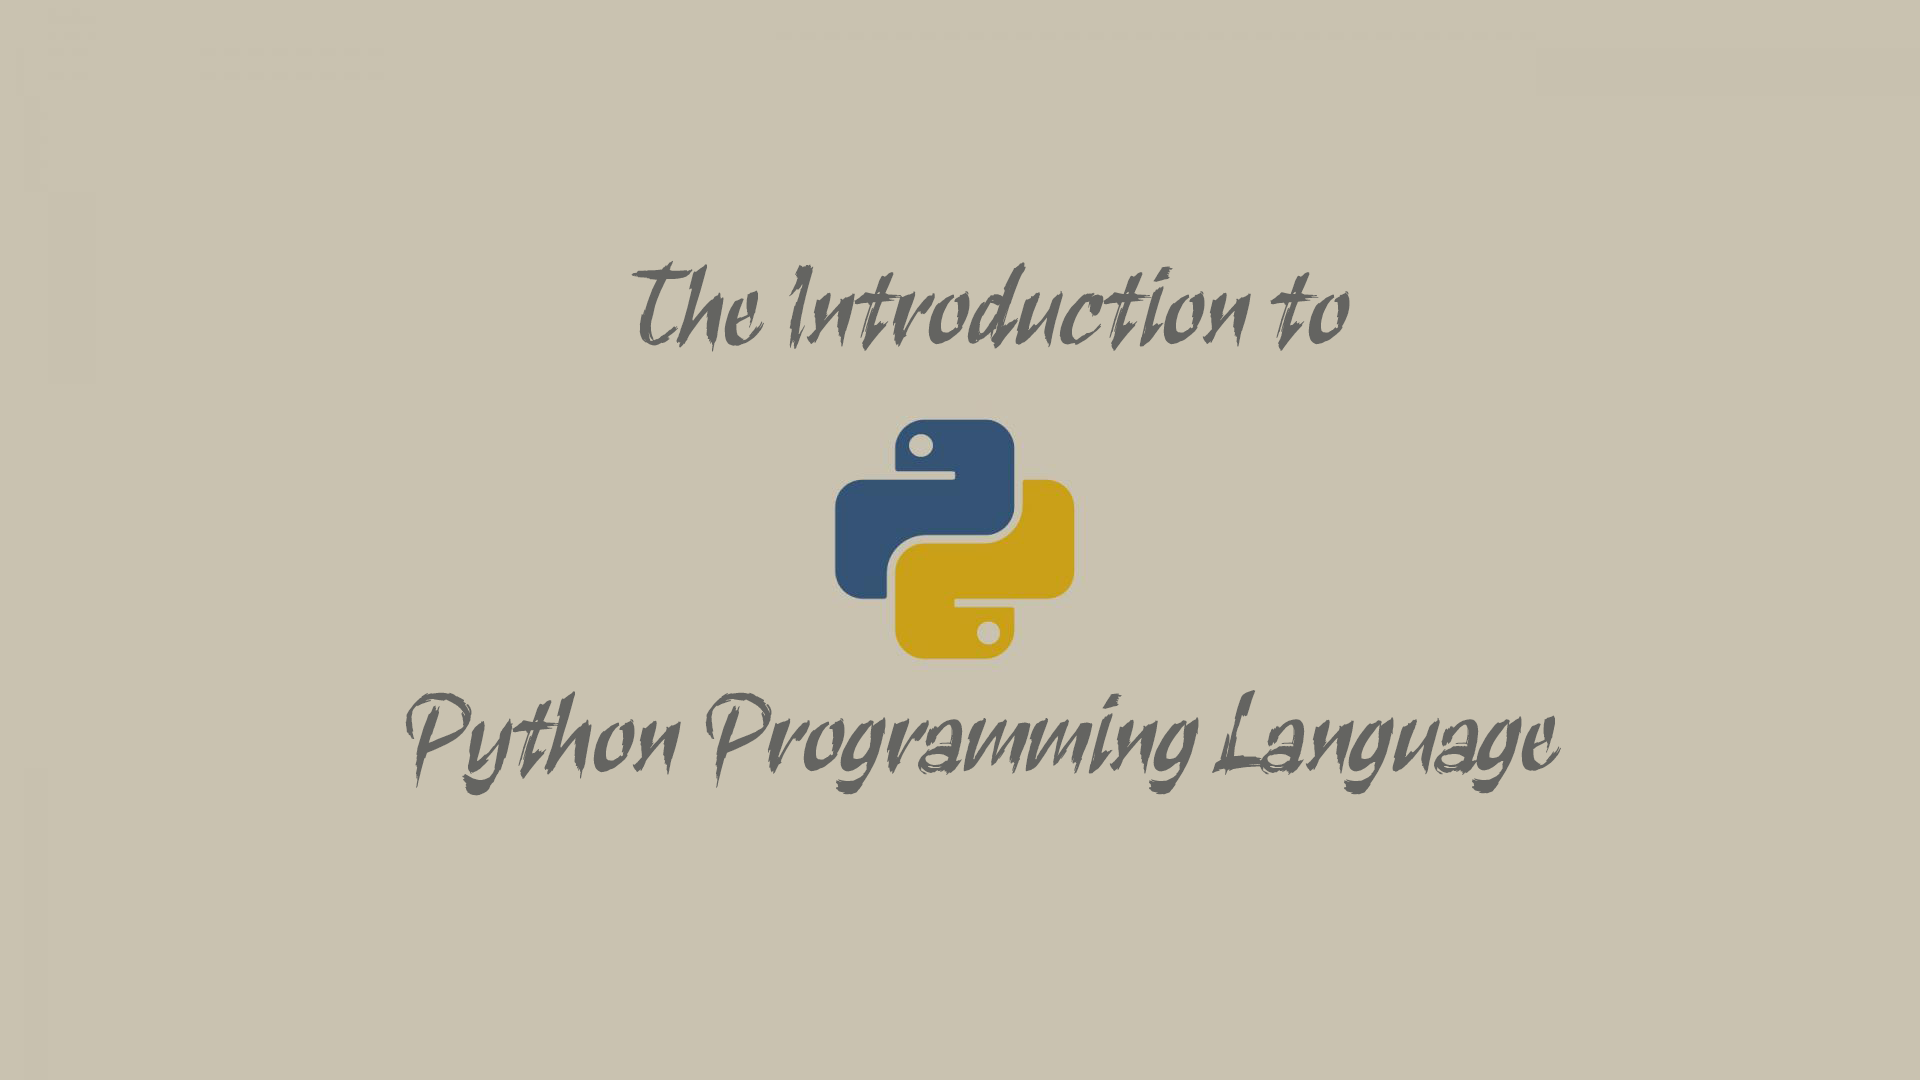 The Introduction to Python Programming Language